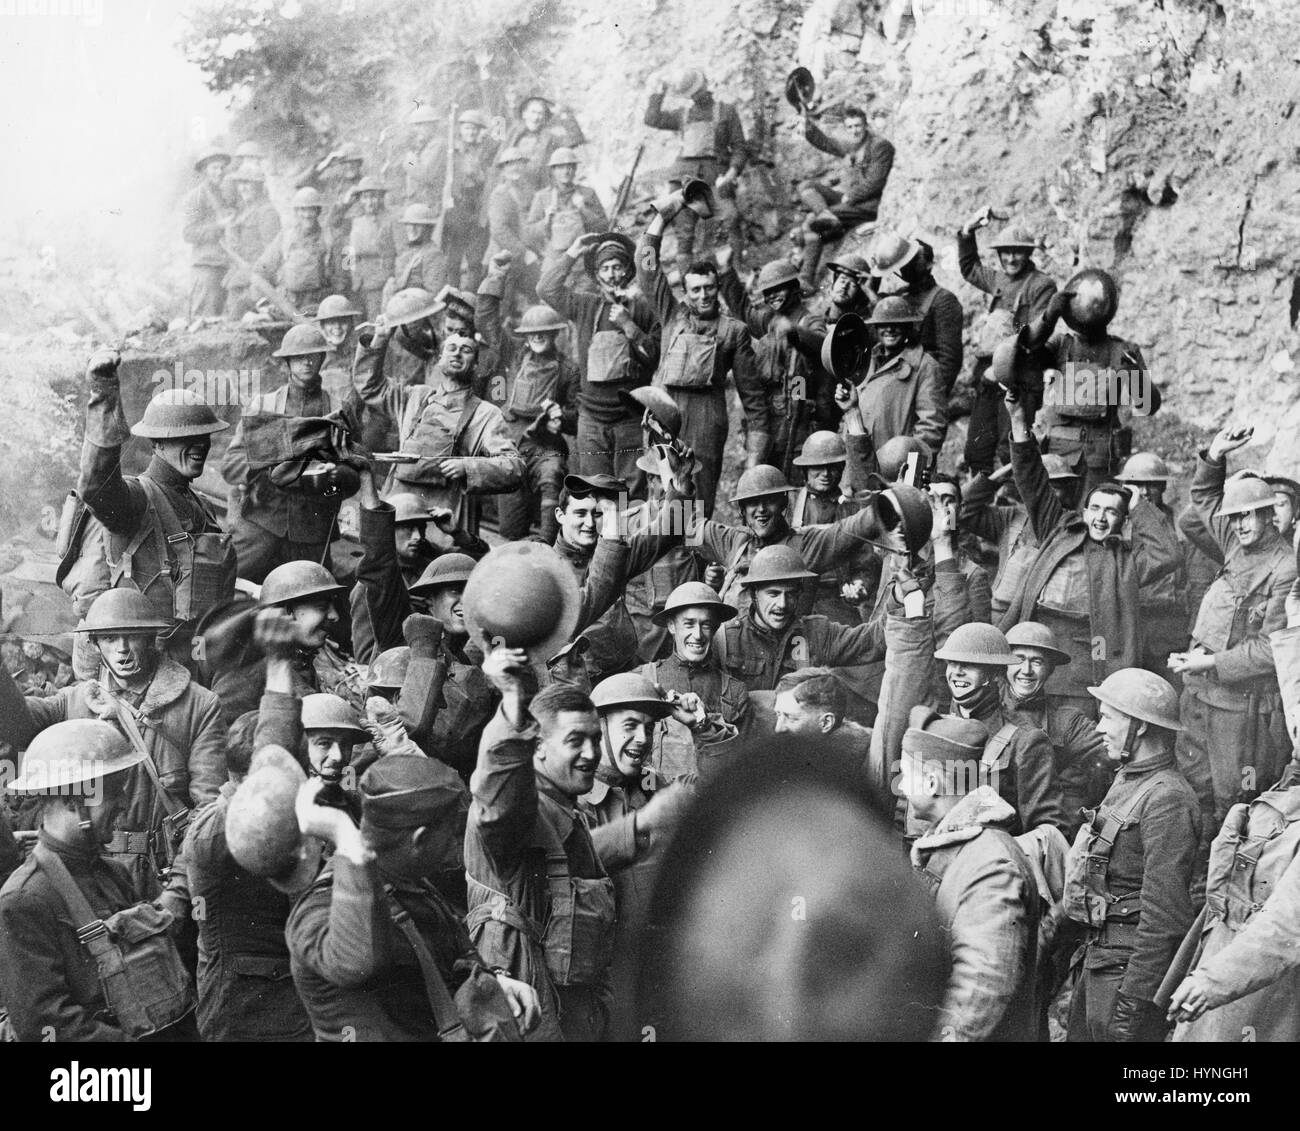 News of the finish of World War I is joyfully received by the men of the US 64th Regt. Inf, 7th Div. Min de Jaulny, Stock Photo